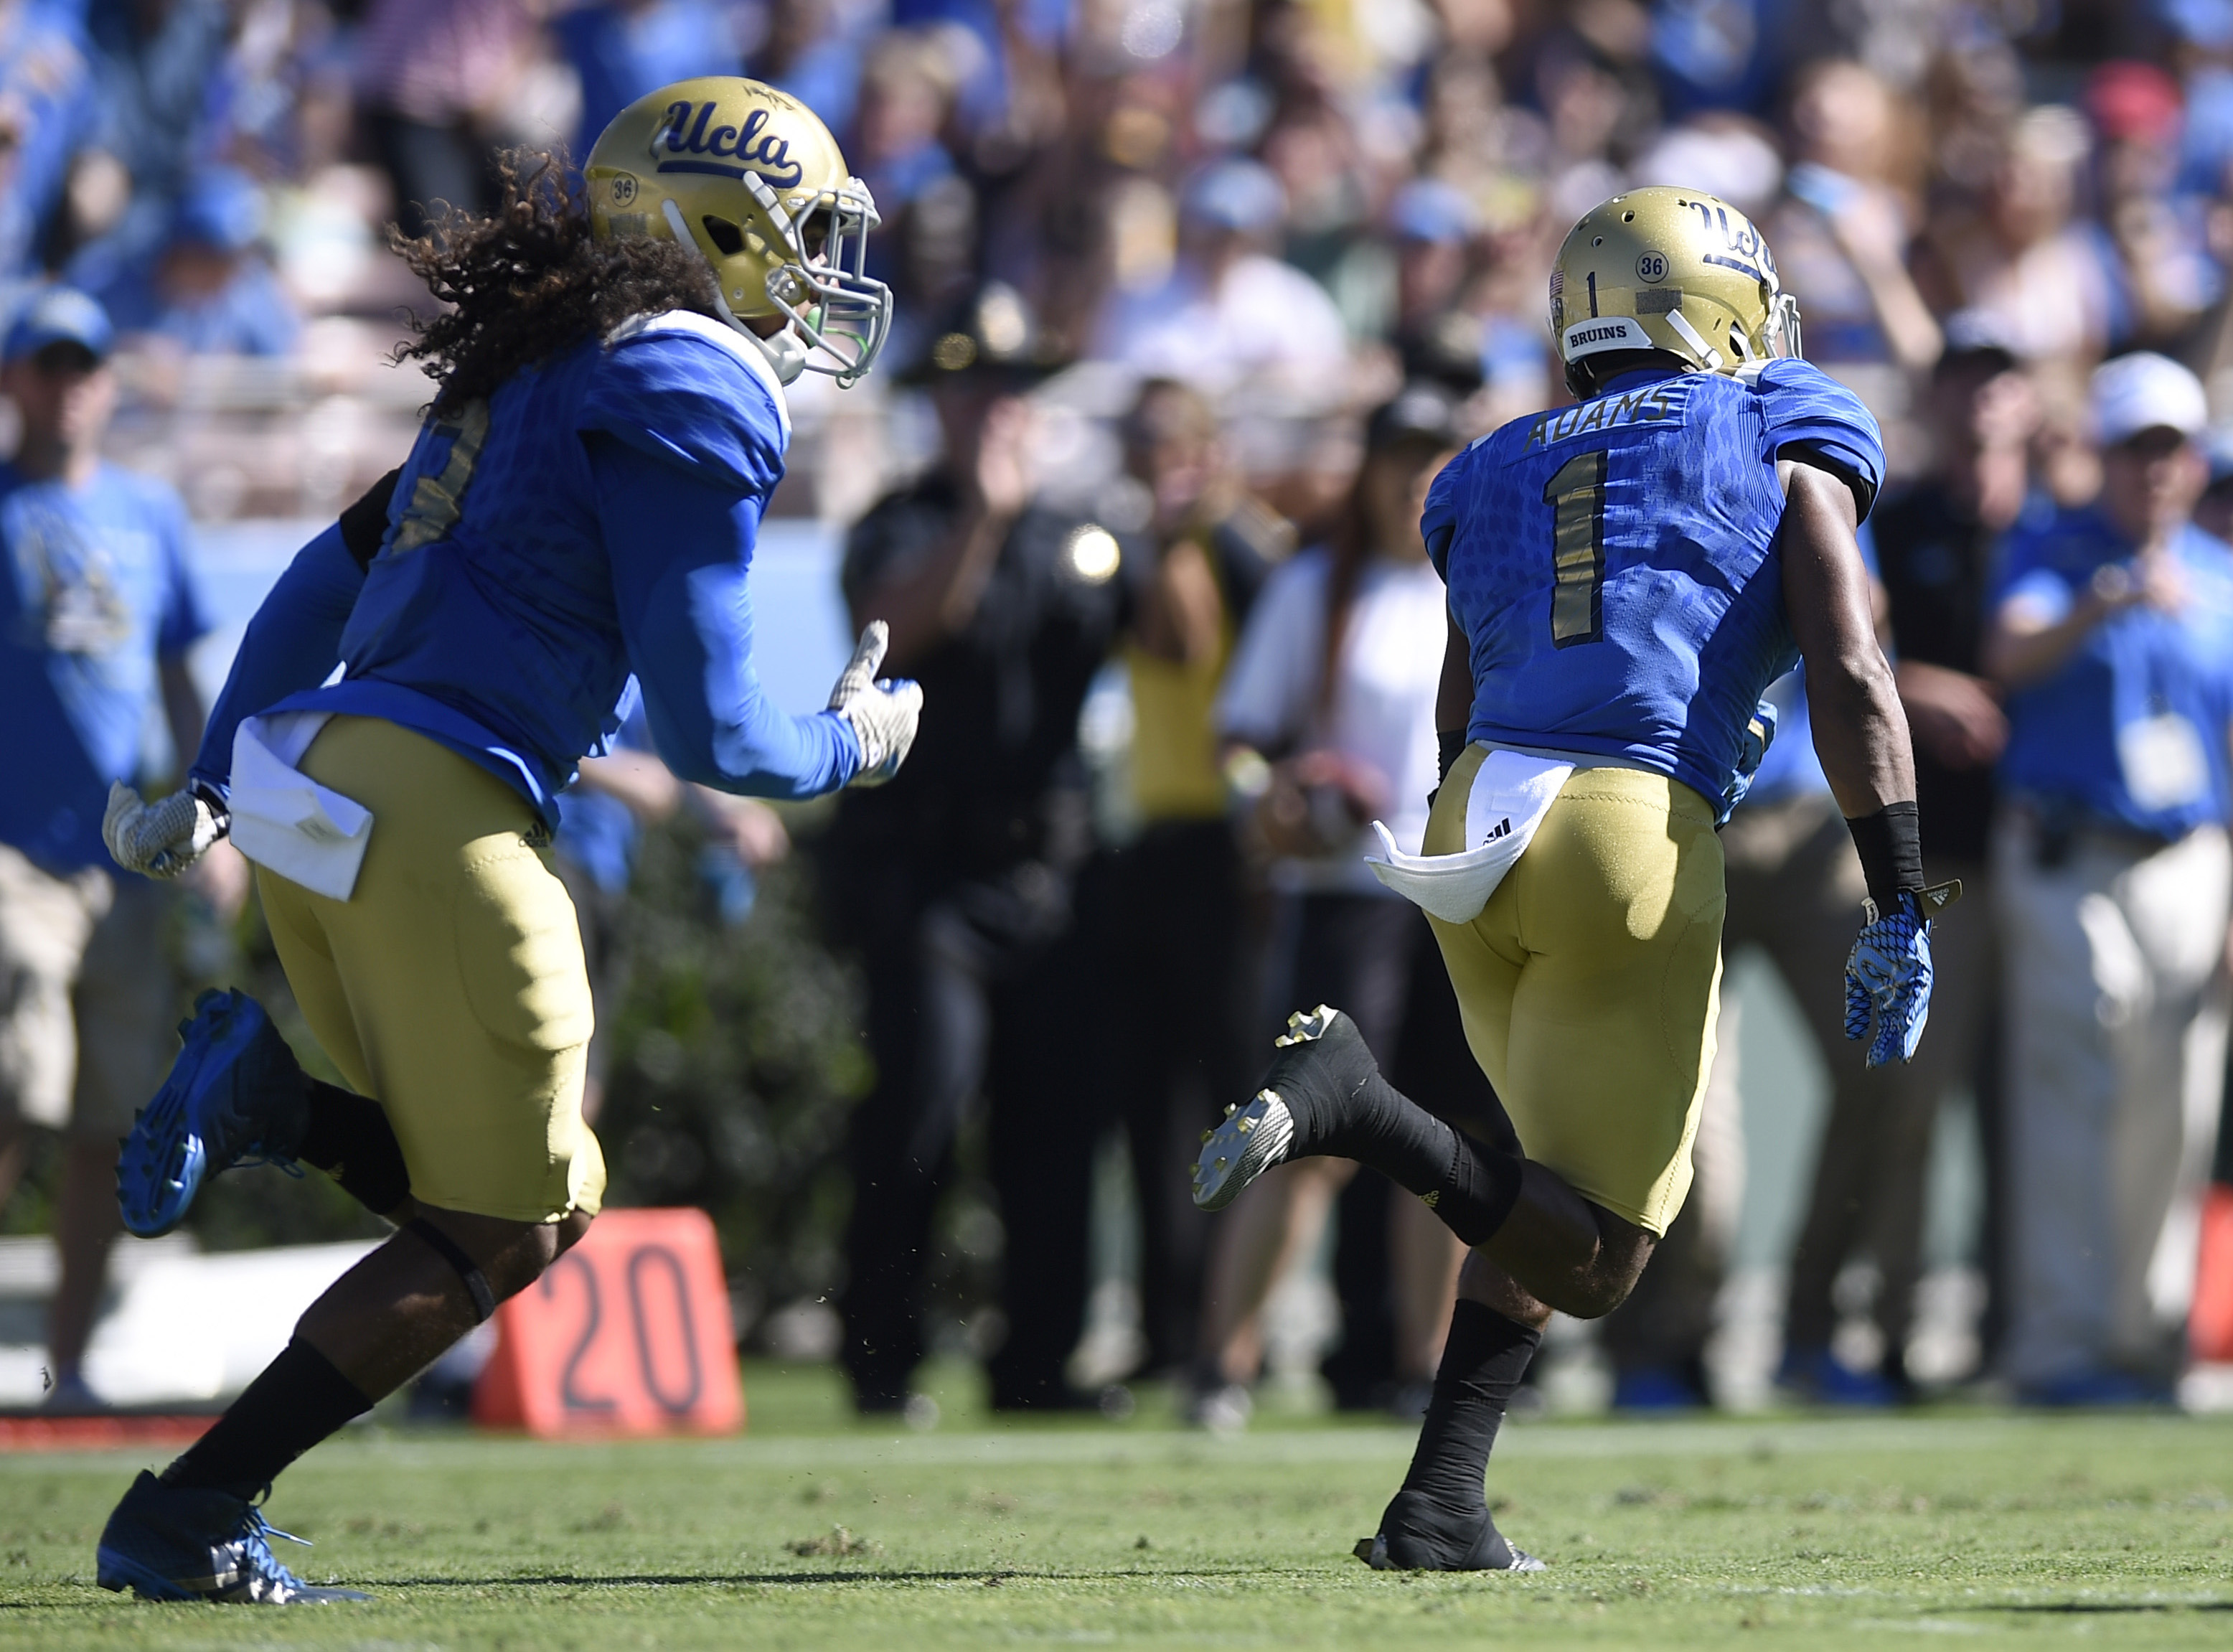 The transition from offense to defense appears to be going well for Ishmael Adams.